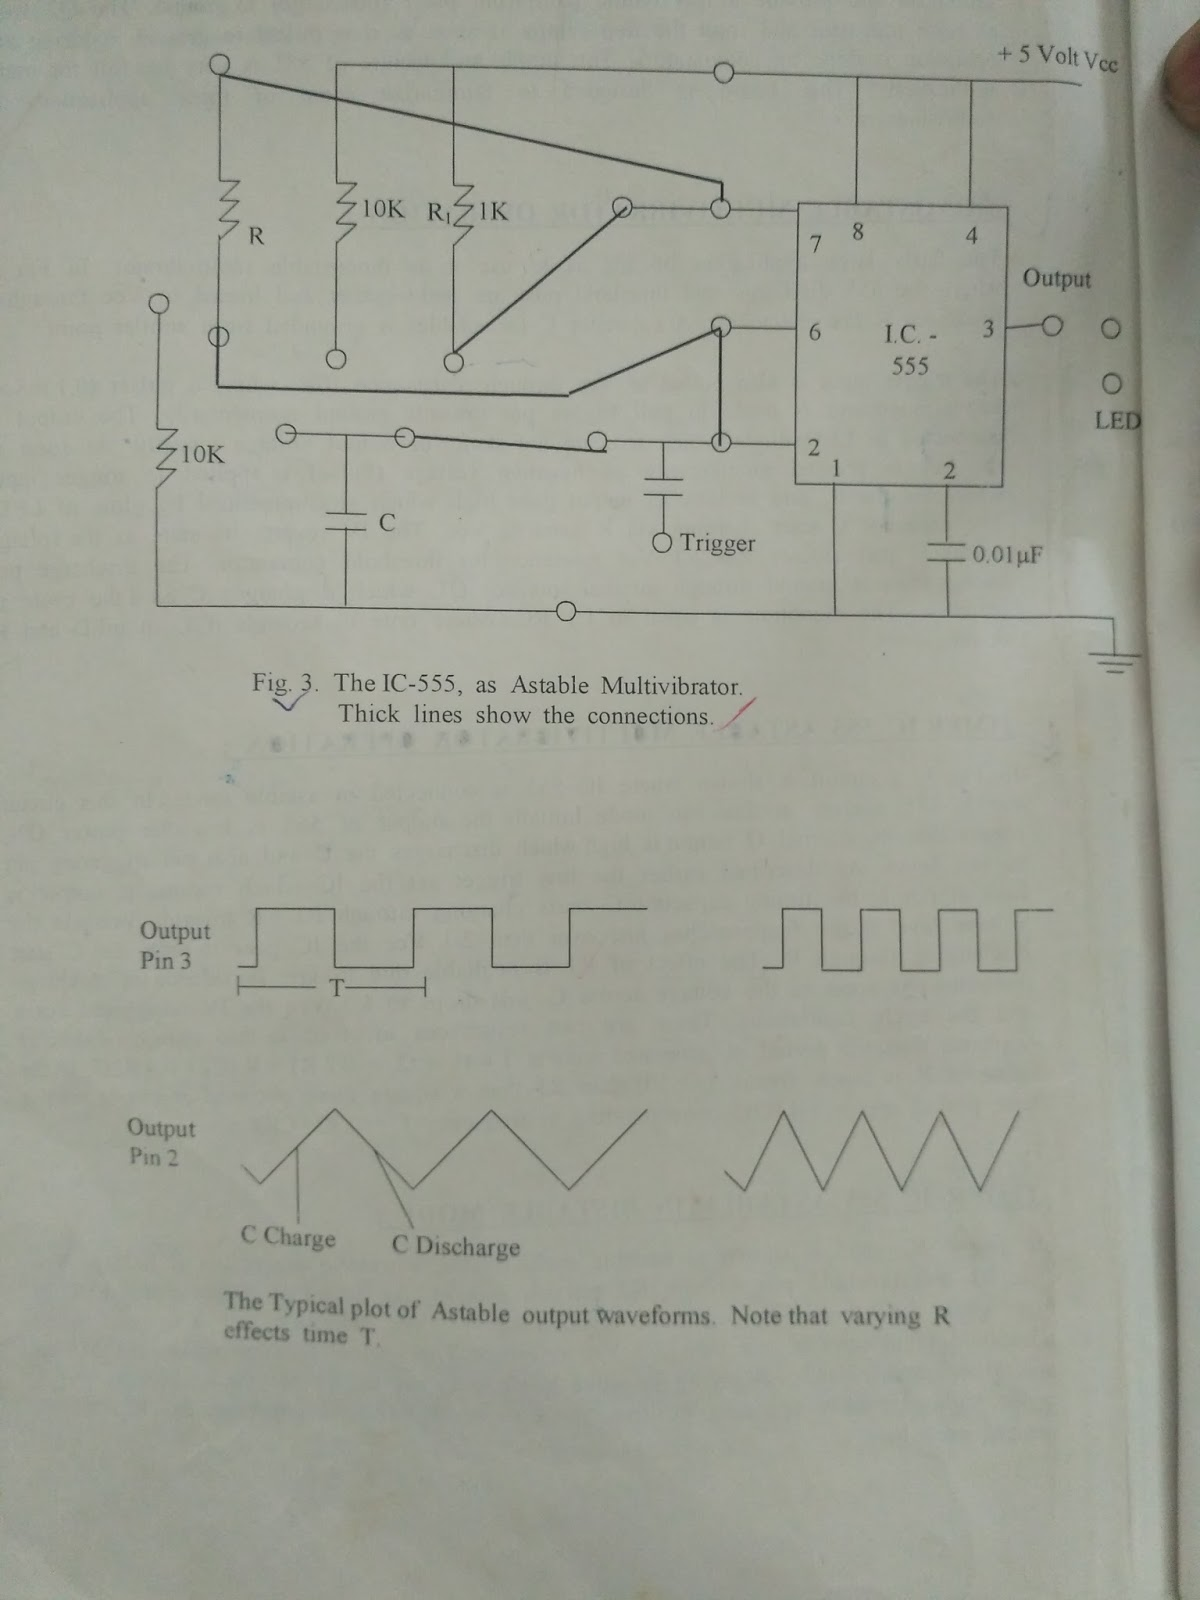 Some Related Things For Engineering Students Practical Files And 555 Timer Ic As Astable Multivibrator 2 Study Of